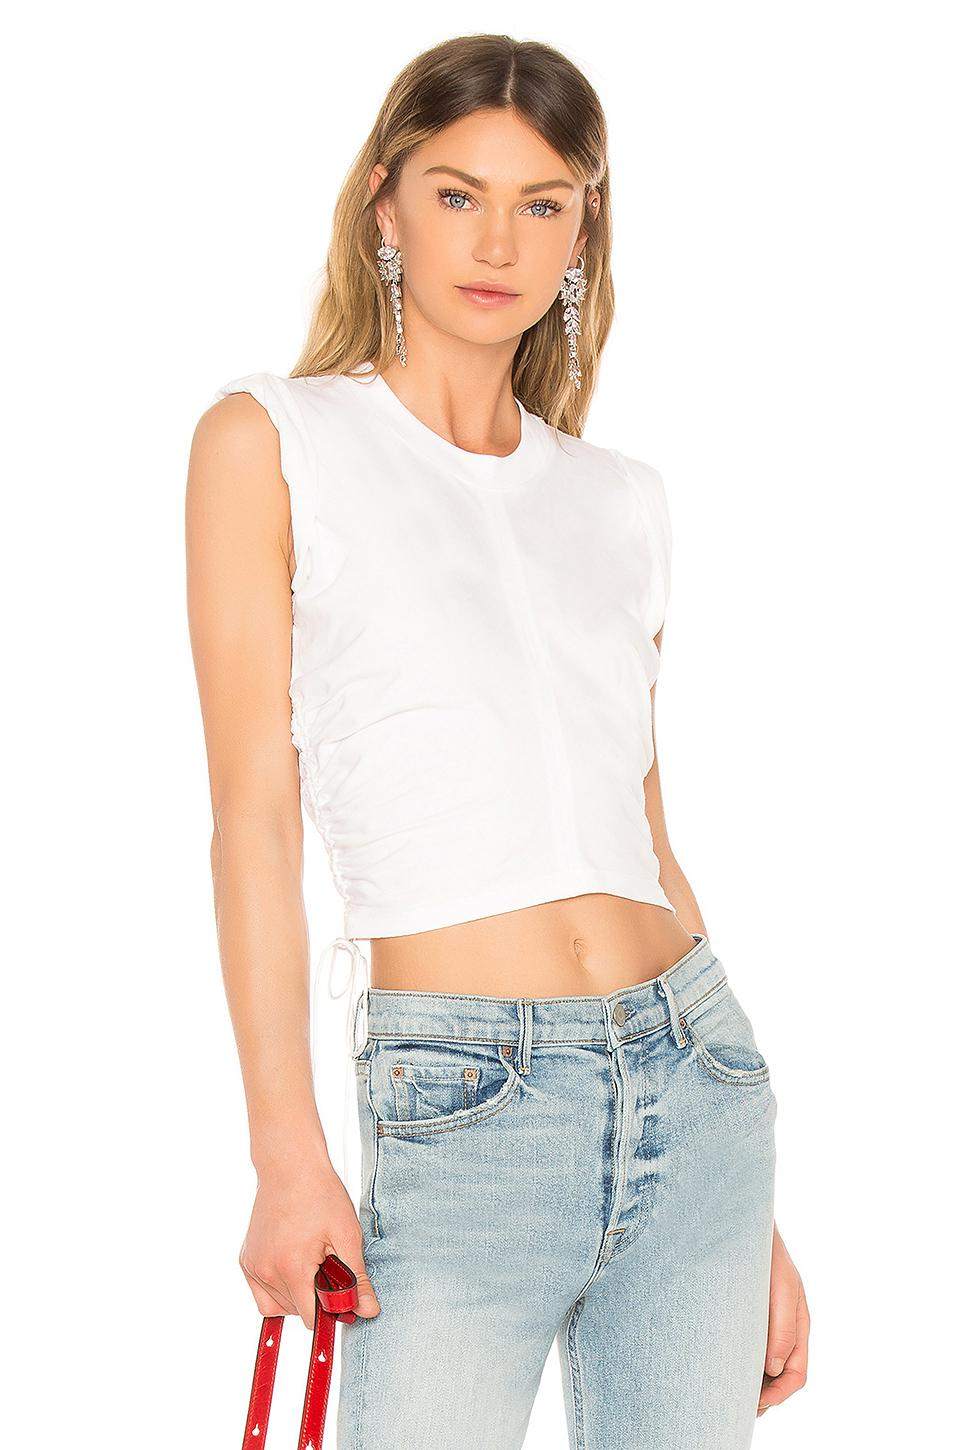 817dcf4a0864e Lyst - T By Alexander Wang High Twist Crop Top in White